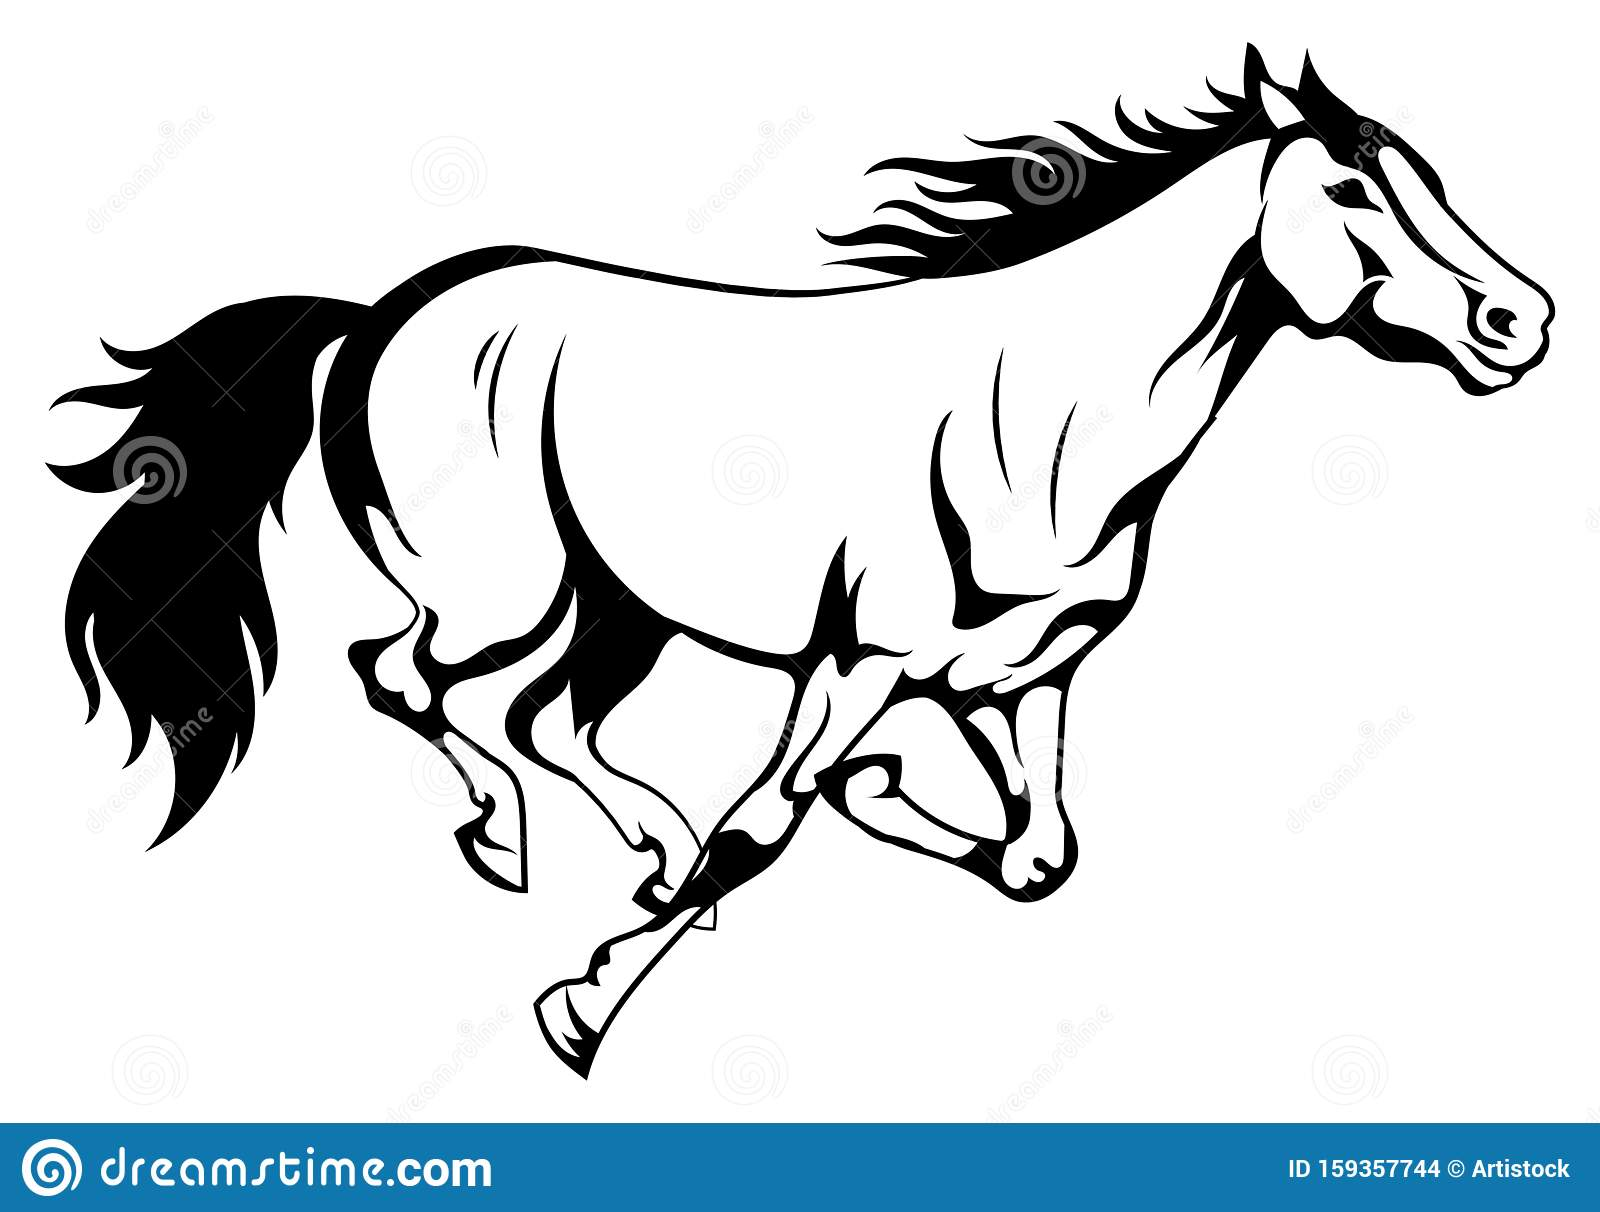 Running Horse Black And White Vector Illustration Of Running Wild Mustang Silhouette Of A Farm Animal Tattoo Stock Vector Illustration Of Wilderness Tribal 159357744